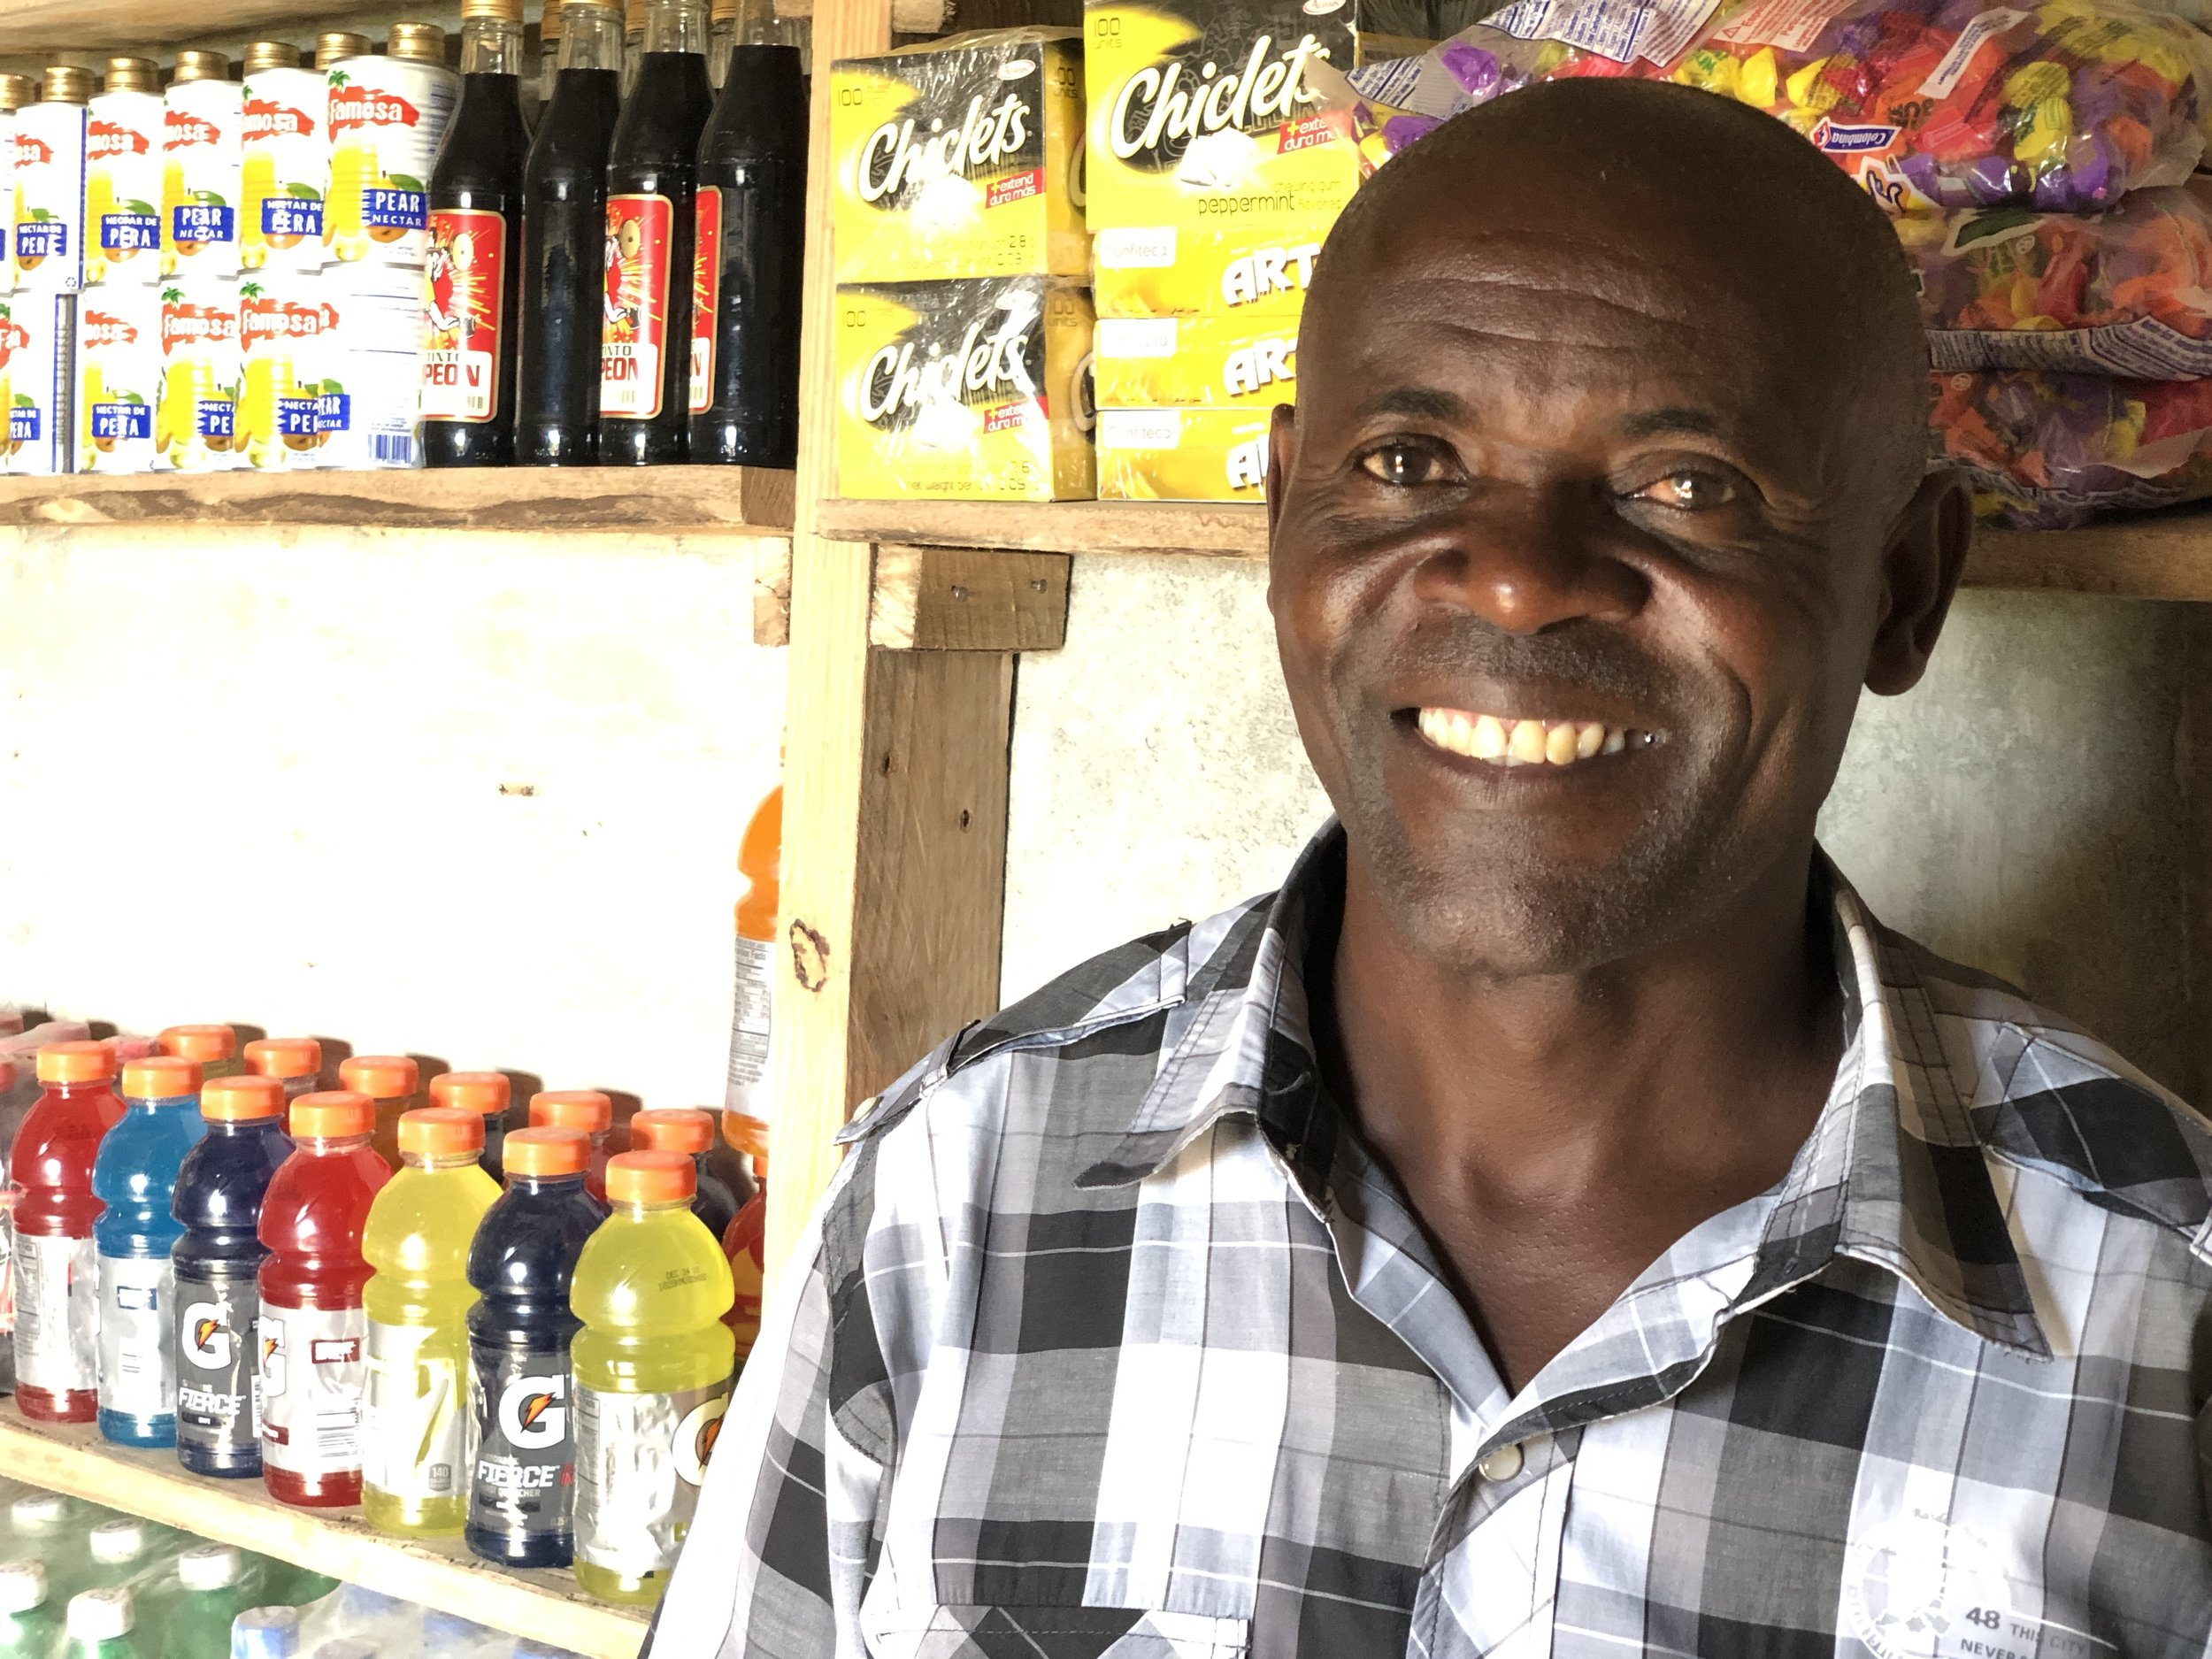 Pastor Leger is excited to see what God will do with this new shop in his community.